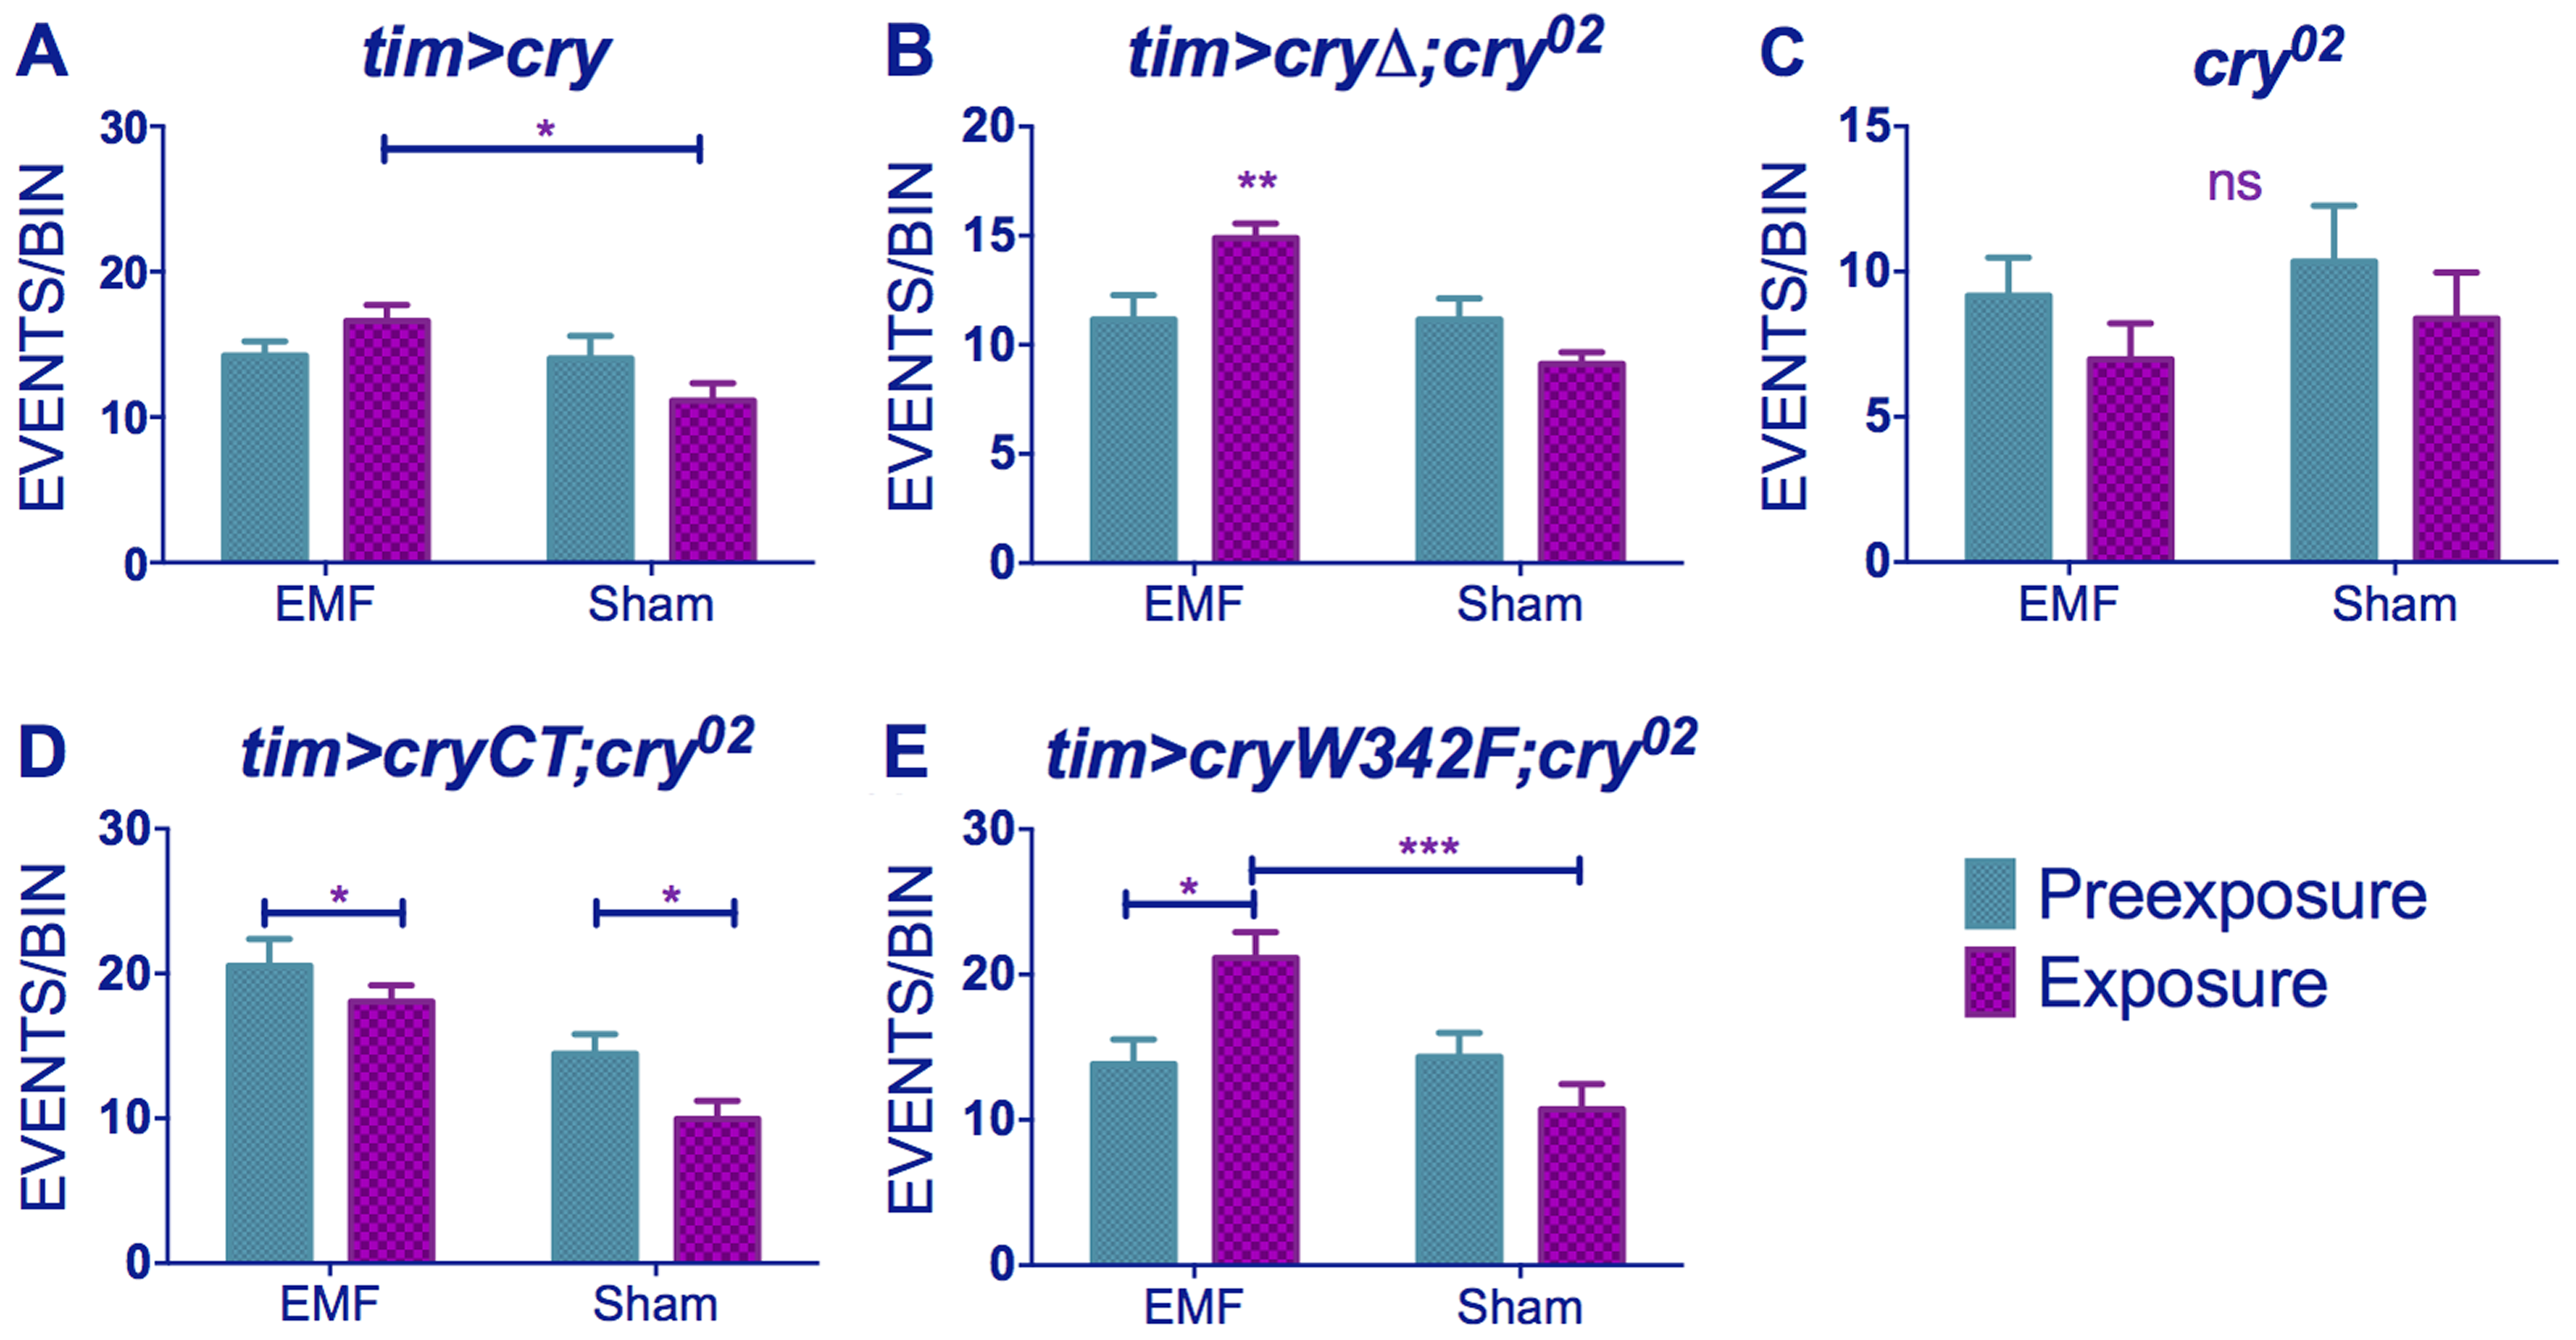 EMF-induced hyperactivity in <i>cry</i> variants.